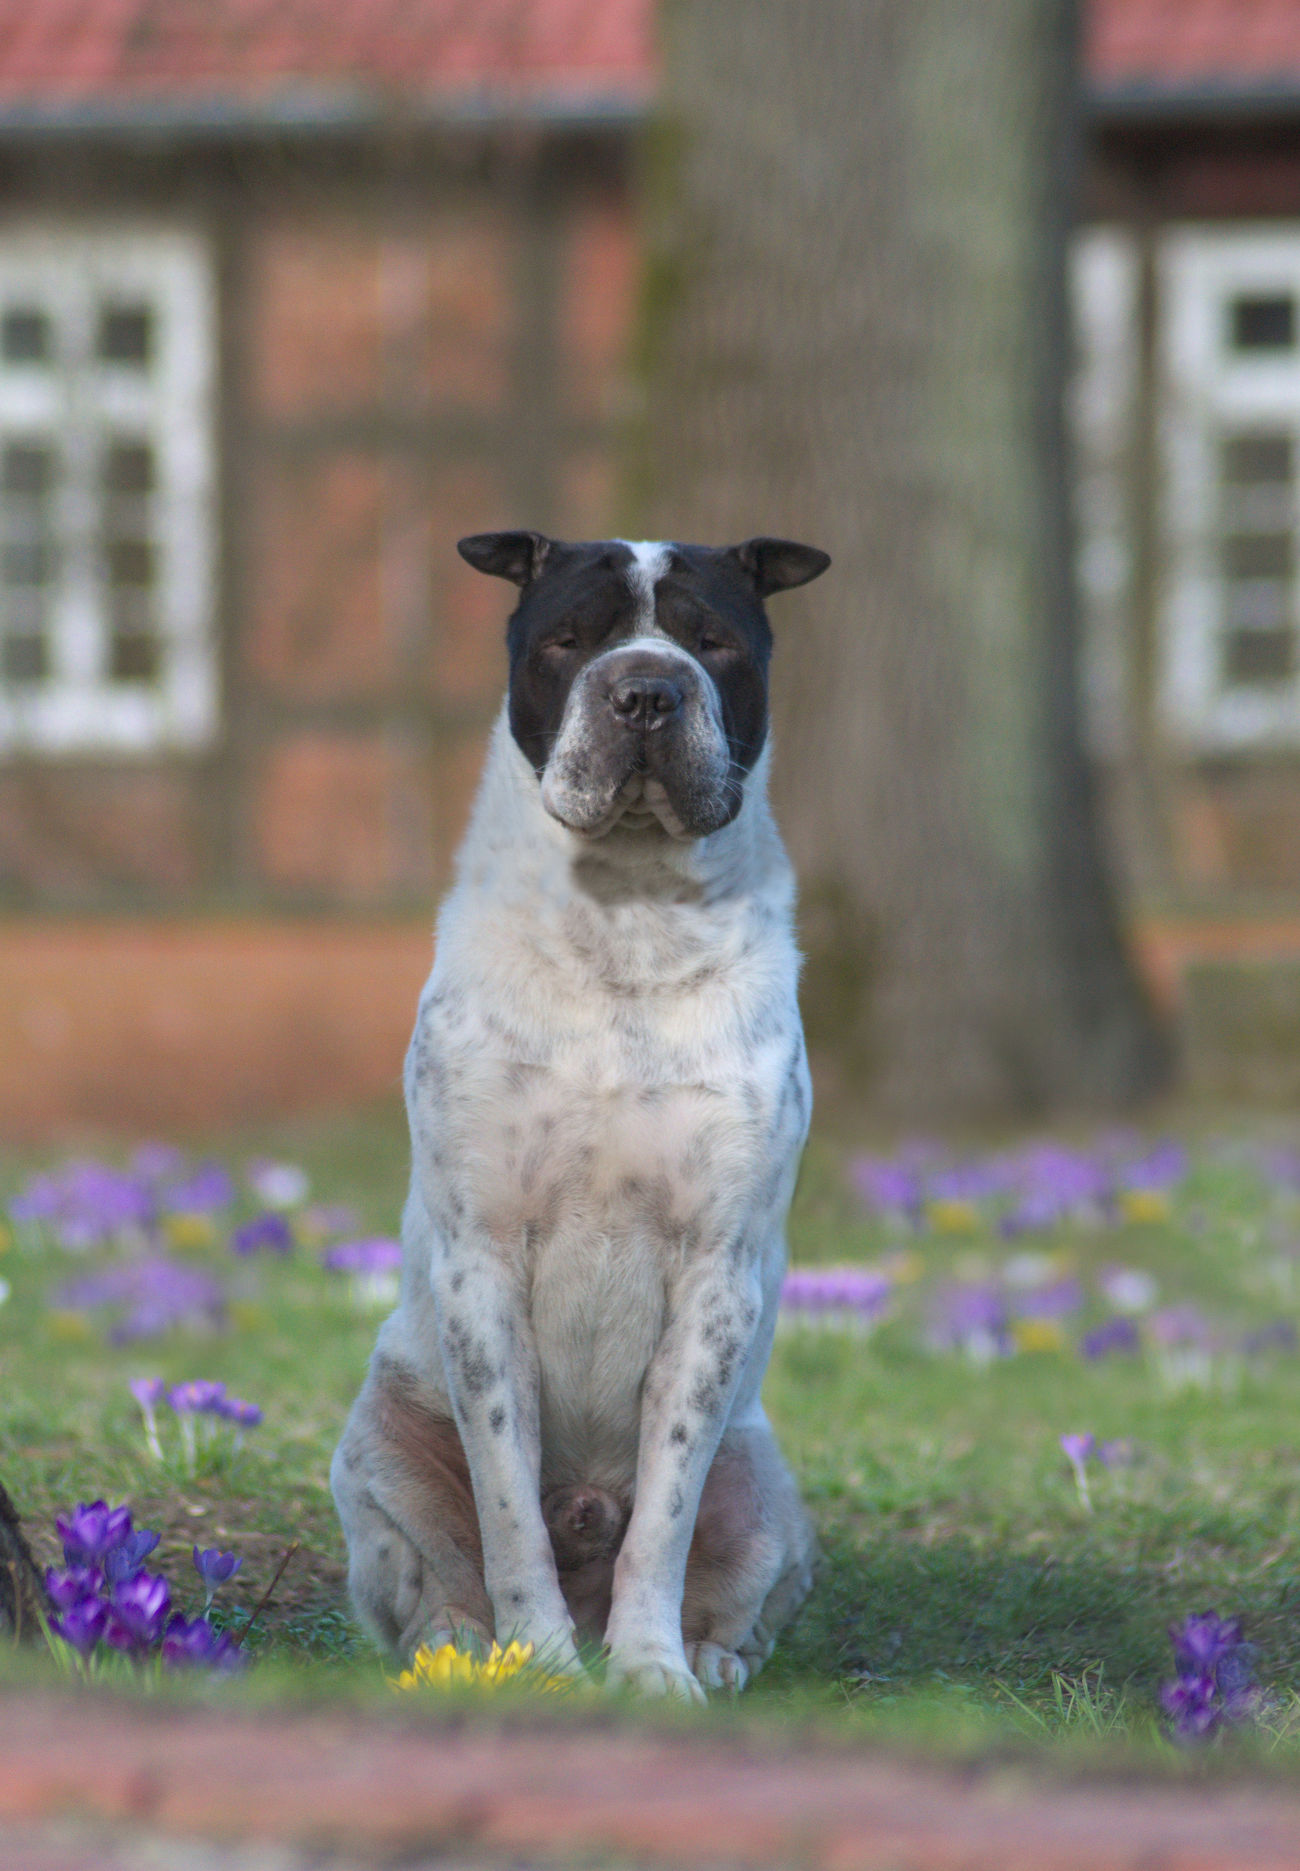 One Animal Grass Dog Flowers Blumen Krokus Krokusse Outdoors Animal Themes No People Animal Pets Dog Photography Hundefotografie Hunde Dogs Shar Pei Natur Nature Half-timbered Fachwerk Fachwerkhaus Bokeh